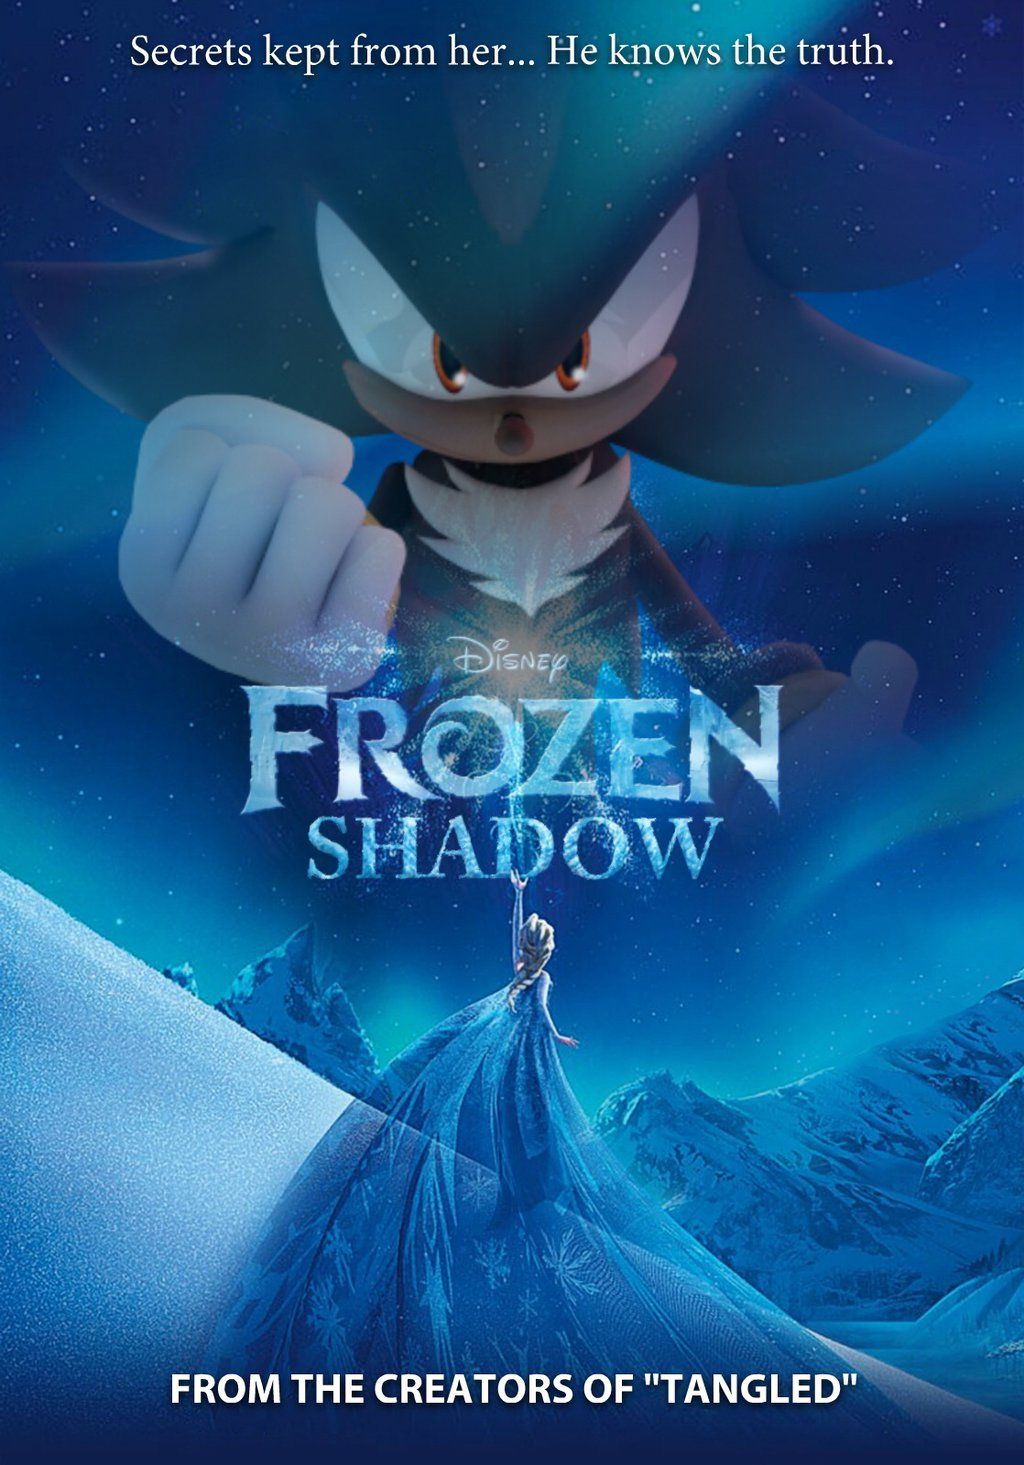 Frozen Shadow (Traditional Poster) by Ultimate-Xovers ..... OH GOD ...